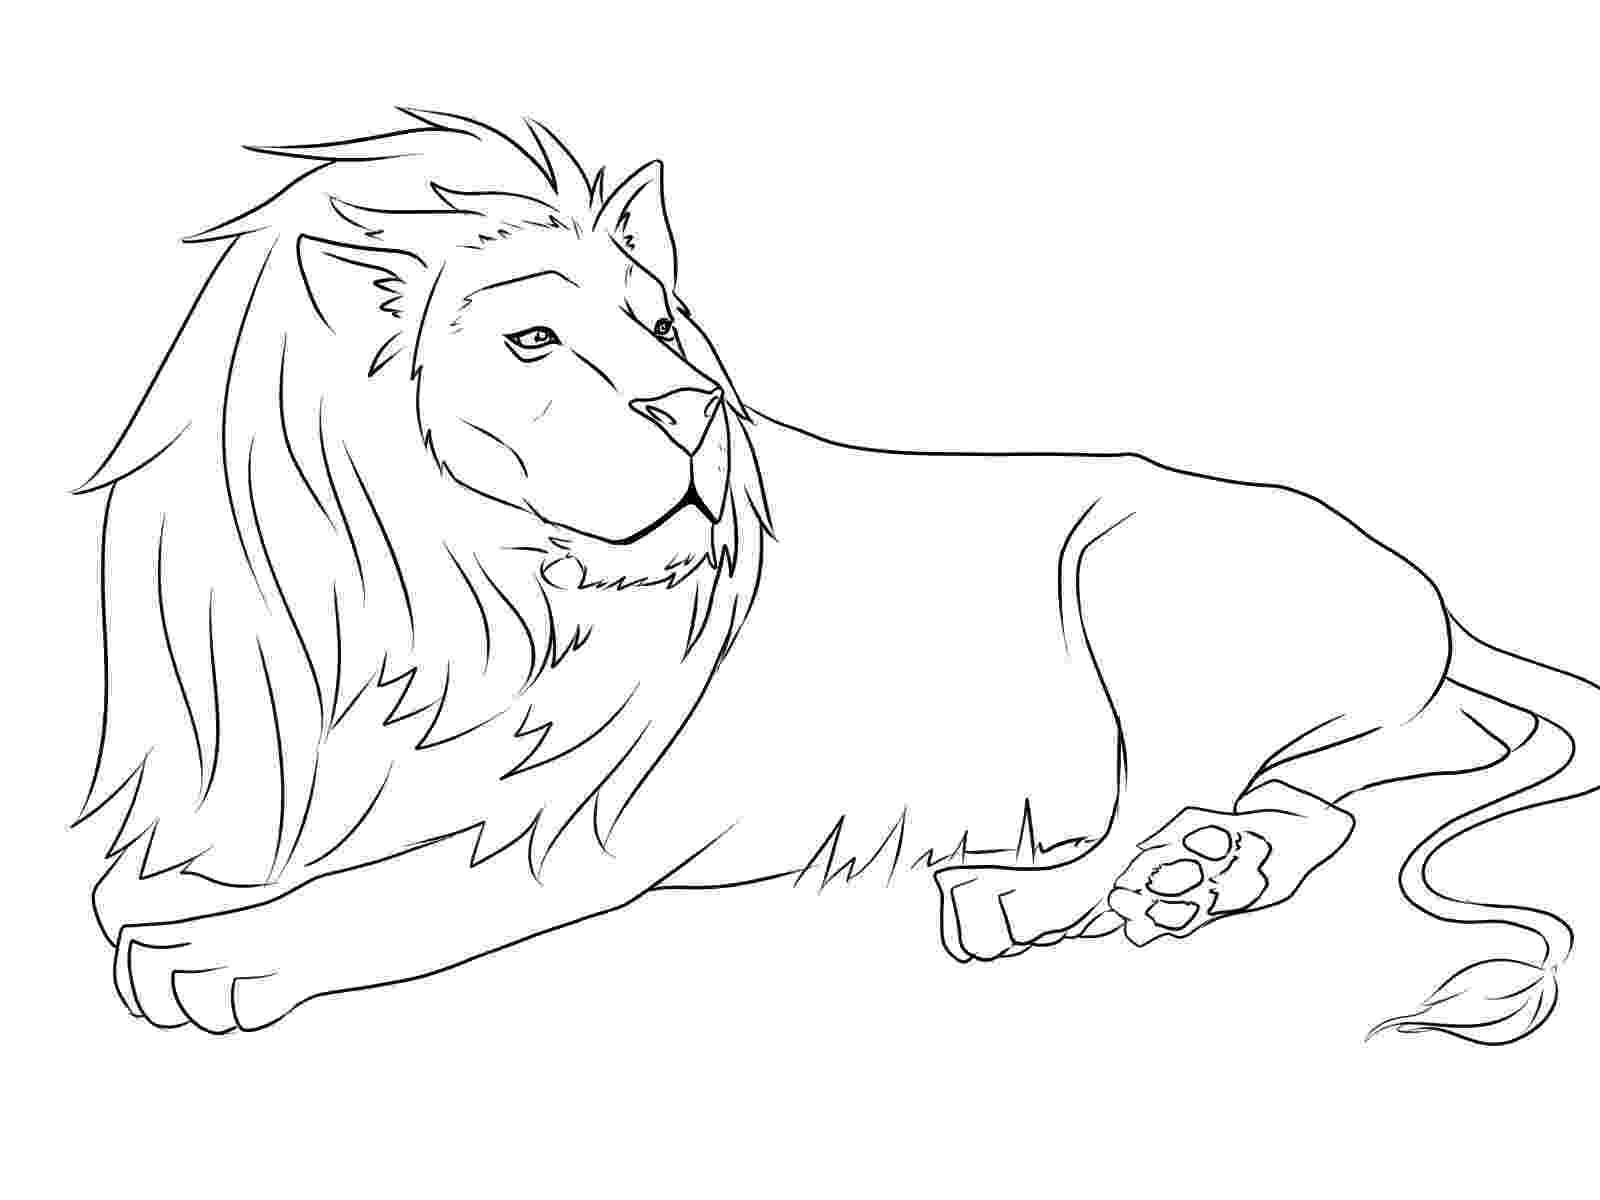 coloring book lion lion coloring pages to download and print for free lion coloring book